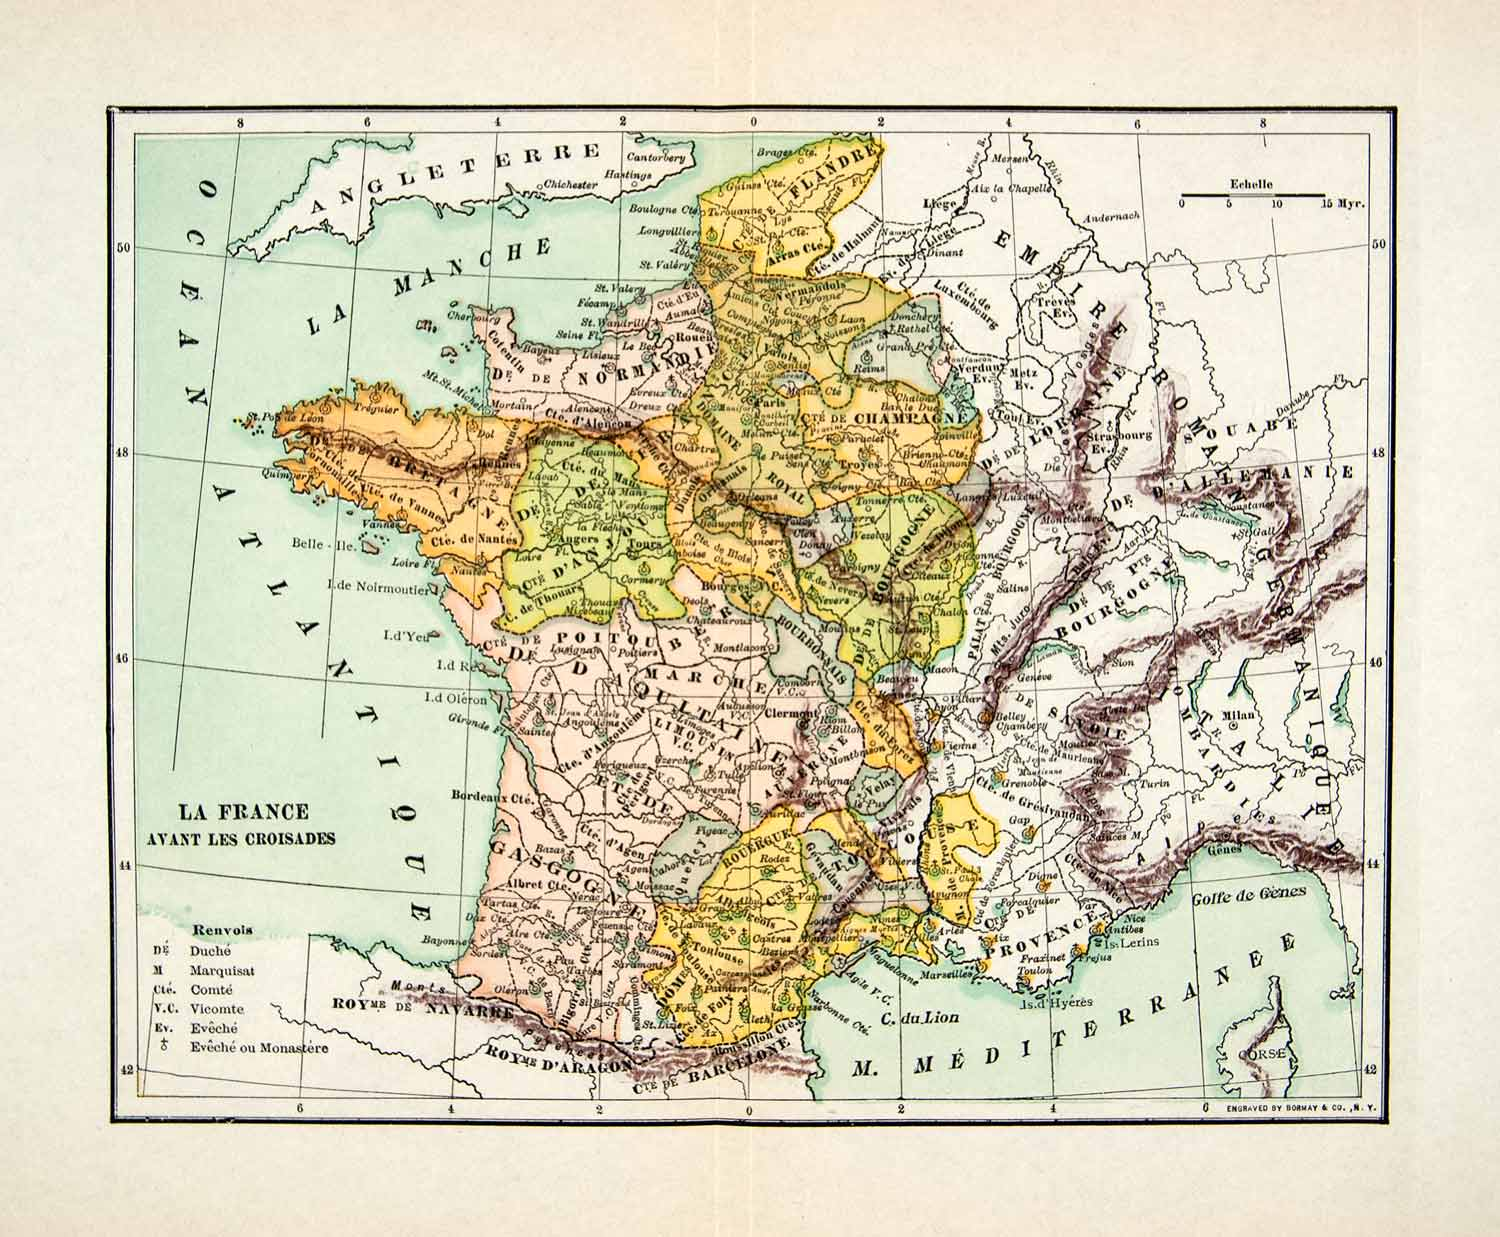 Map Of Normandy France Detailed.1929 Wood Engraving Maps France Normandy Atlantic Ocean Gascony Brittany Xee8